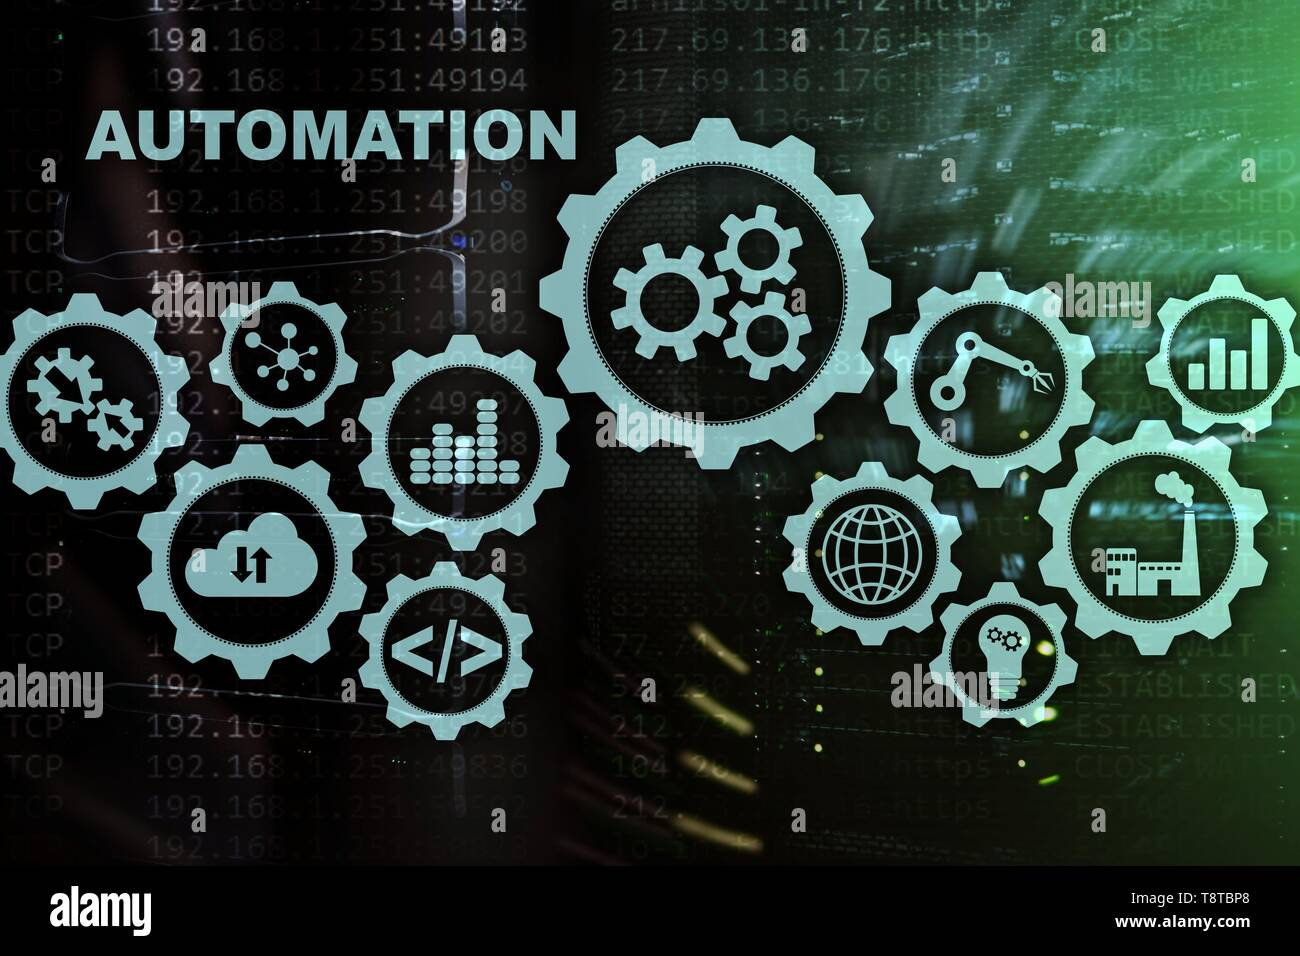 Automation productivity increase concept. Technology Process on a server room background. - Stock Image